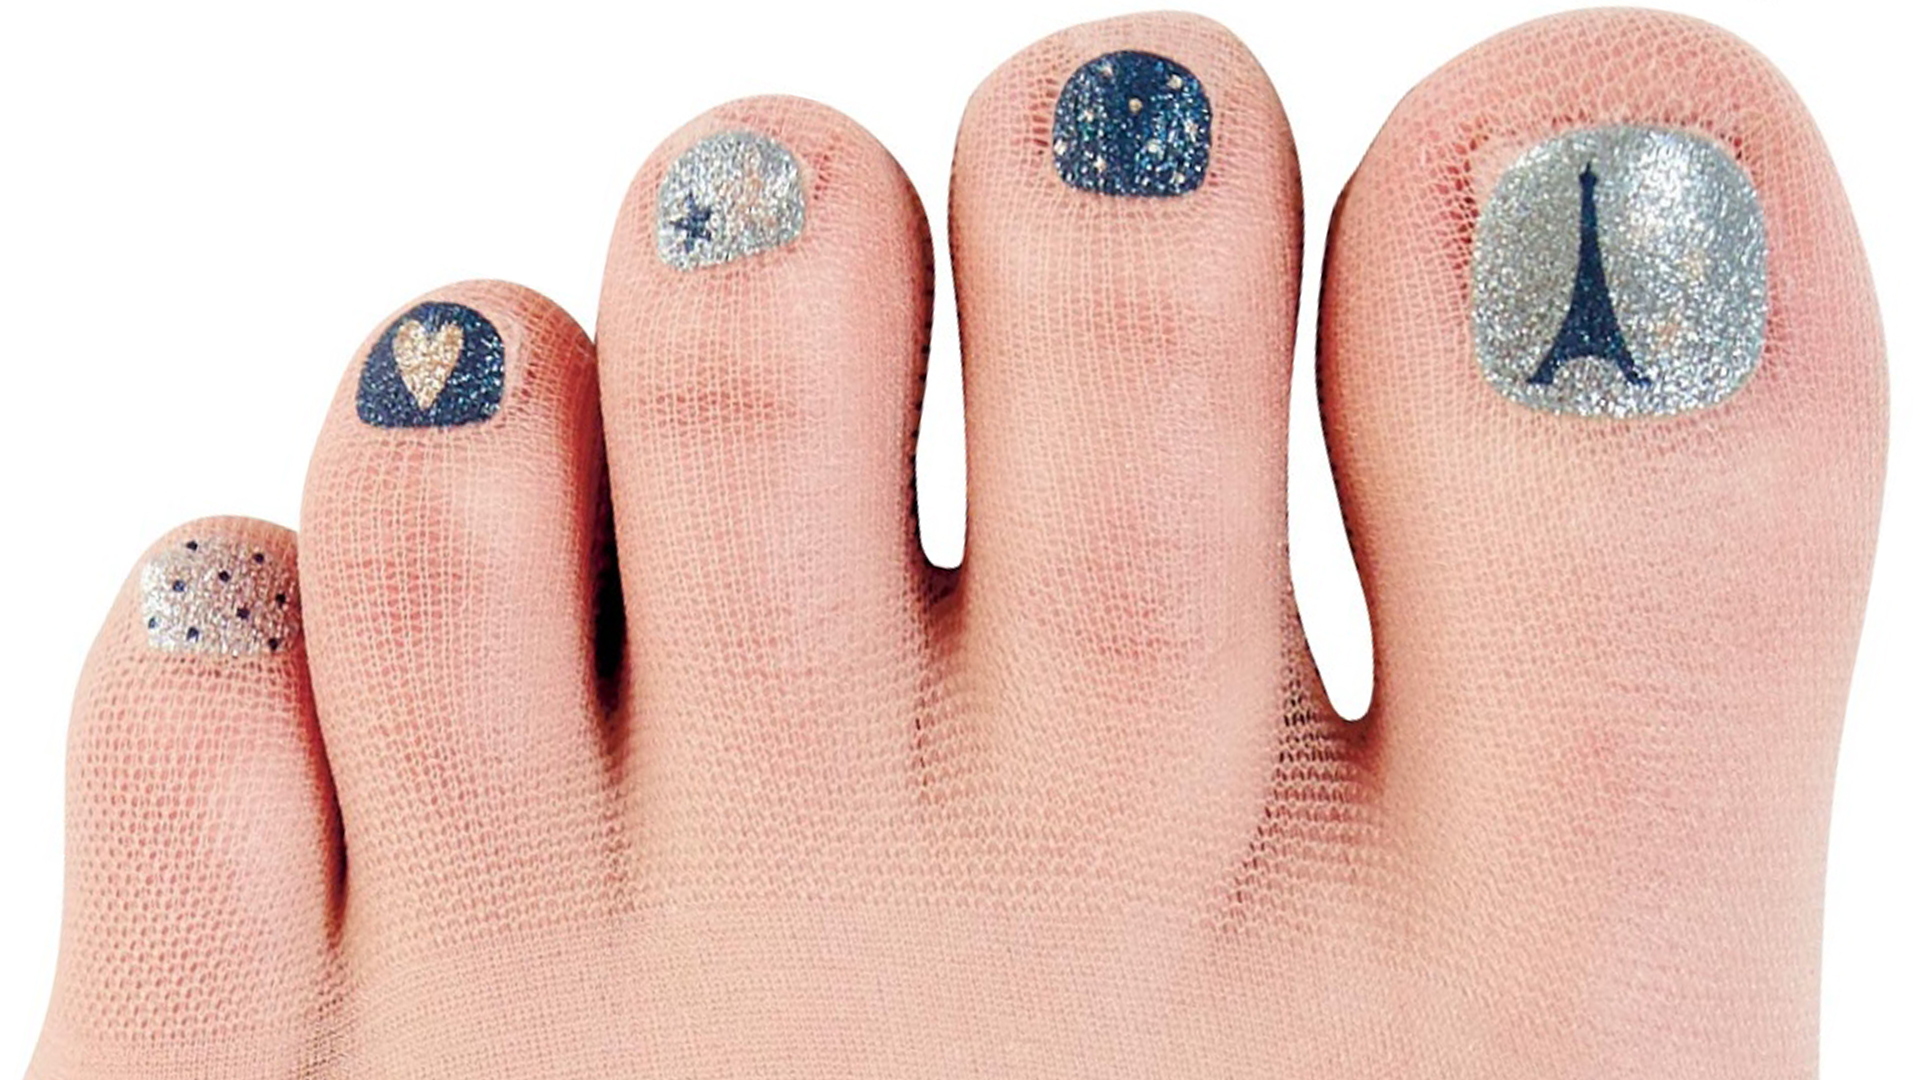 Pedicure stockings have nail polish printed on so you can ...